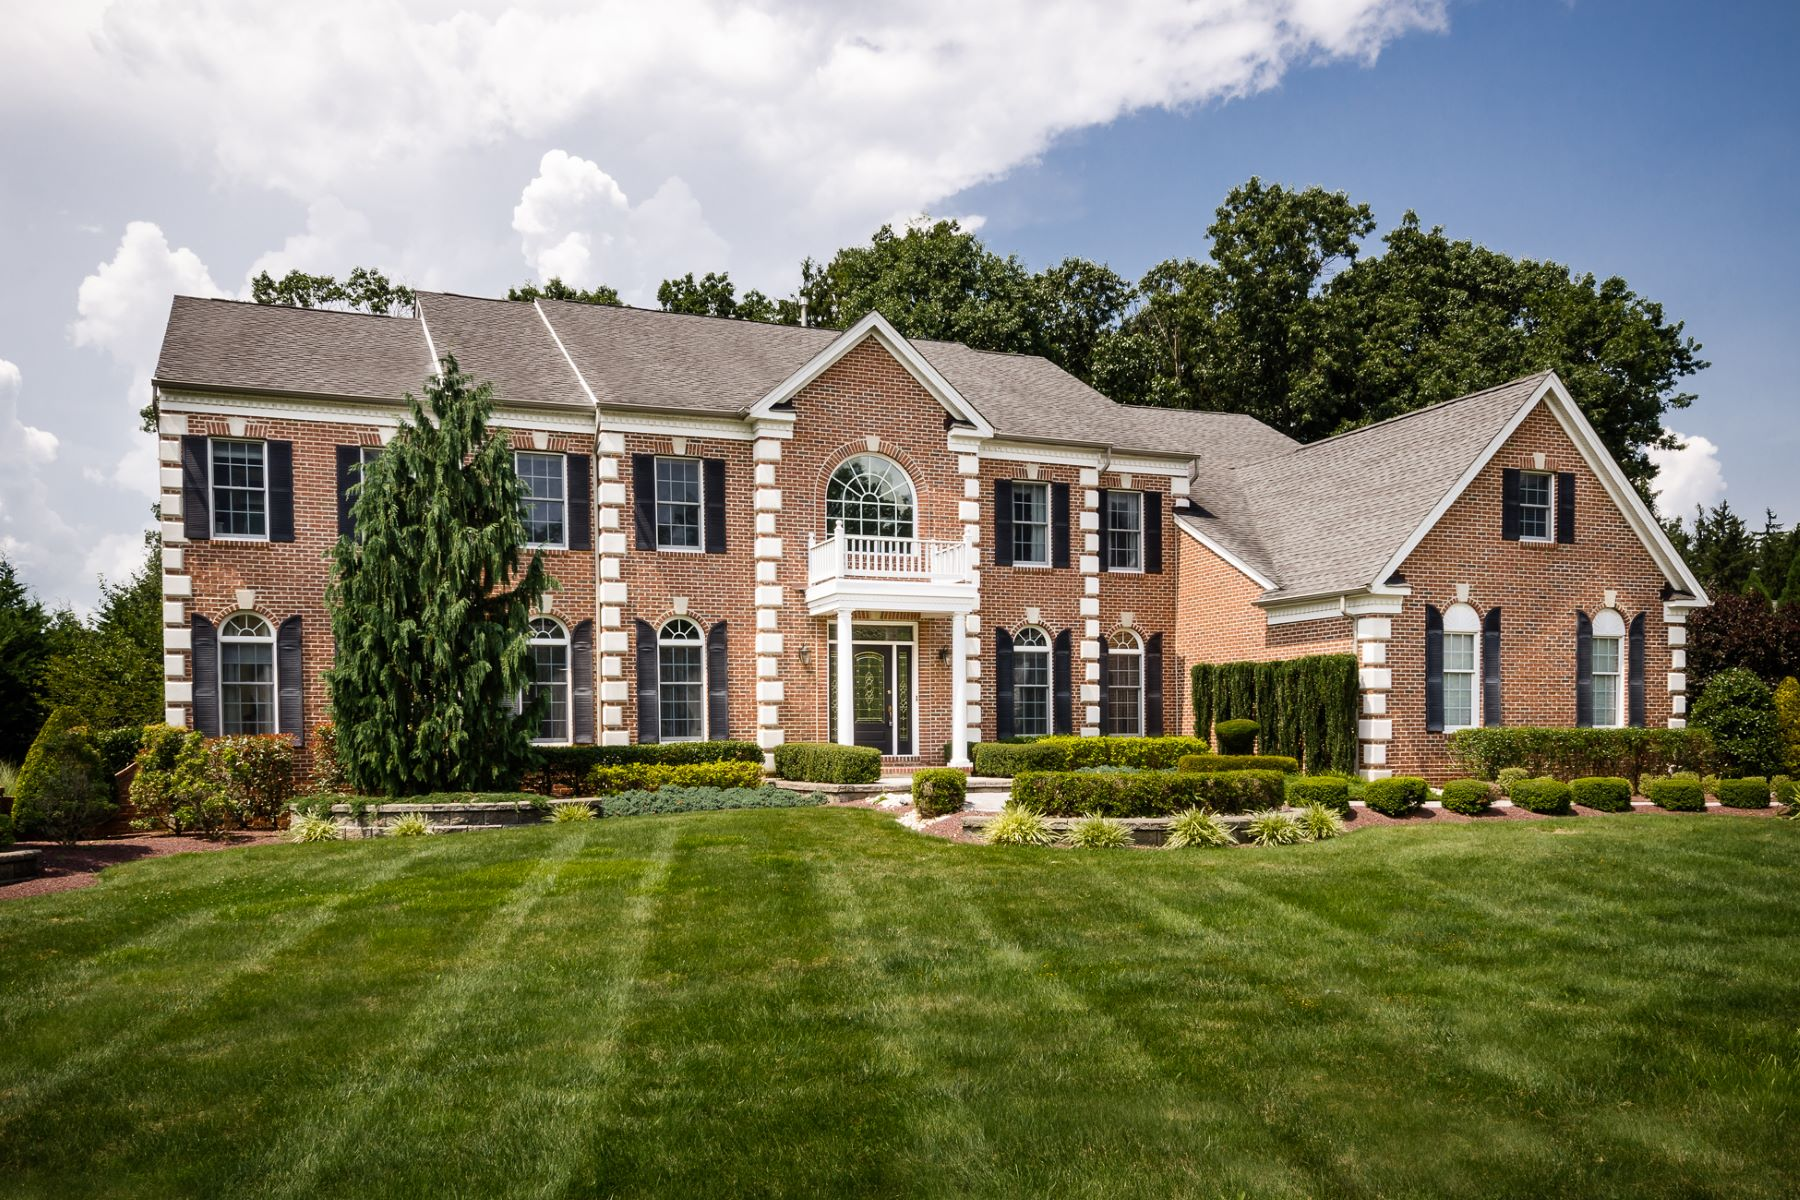 Single Family Home for Sale at Cranbury Colonial Celebrates Toll Brothers Luxury 14 Shady Brook Lane Cranbury, 08512 United States